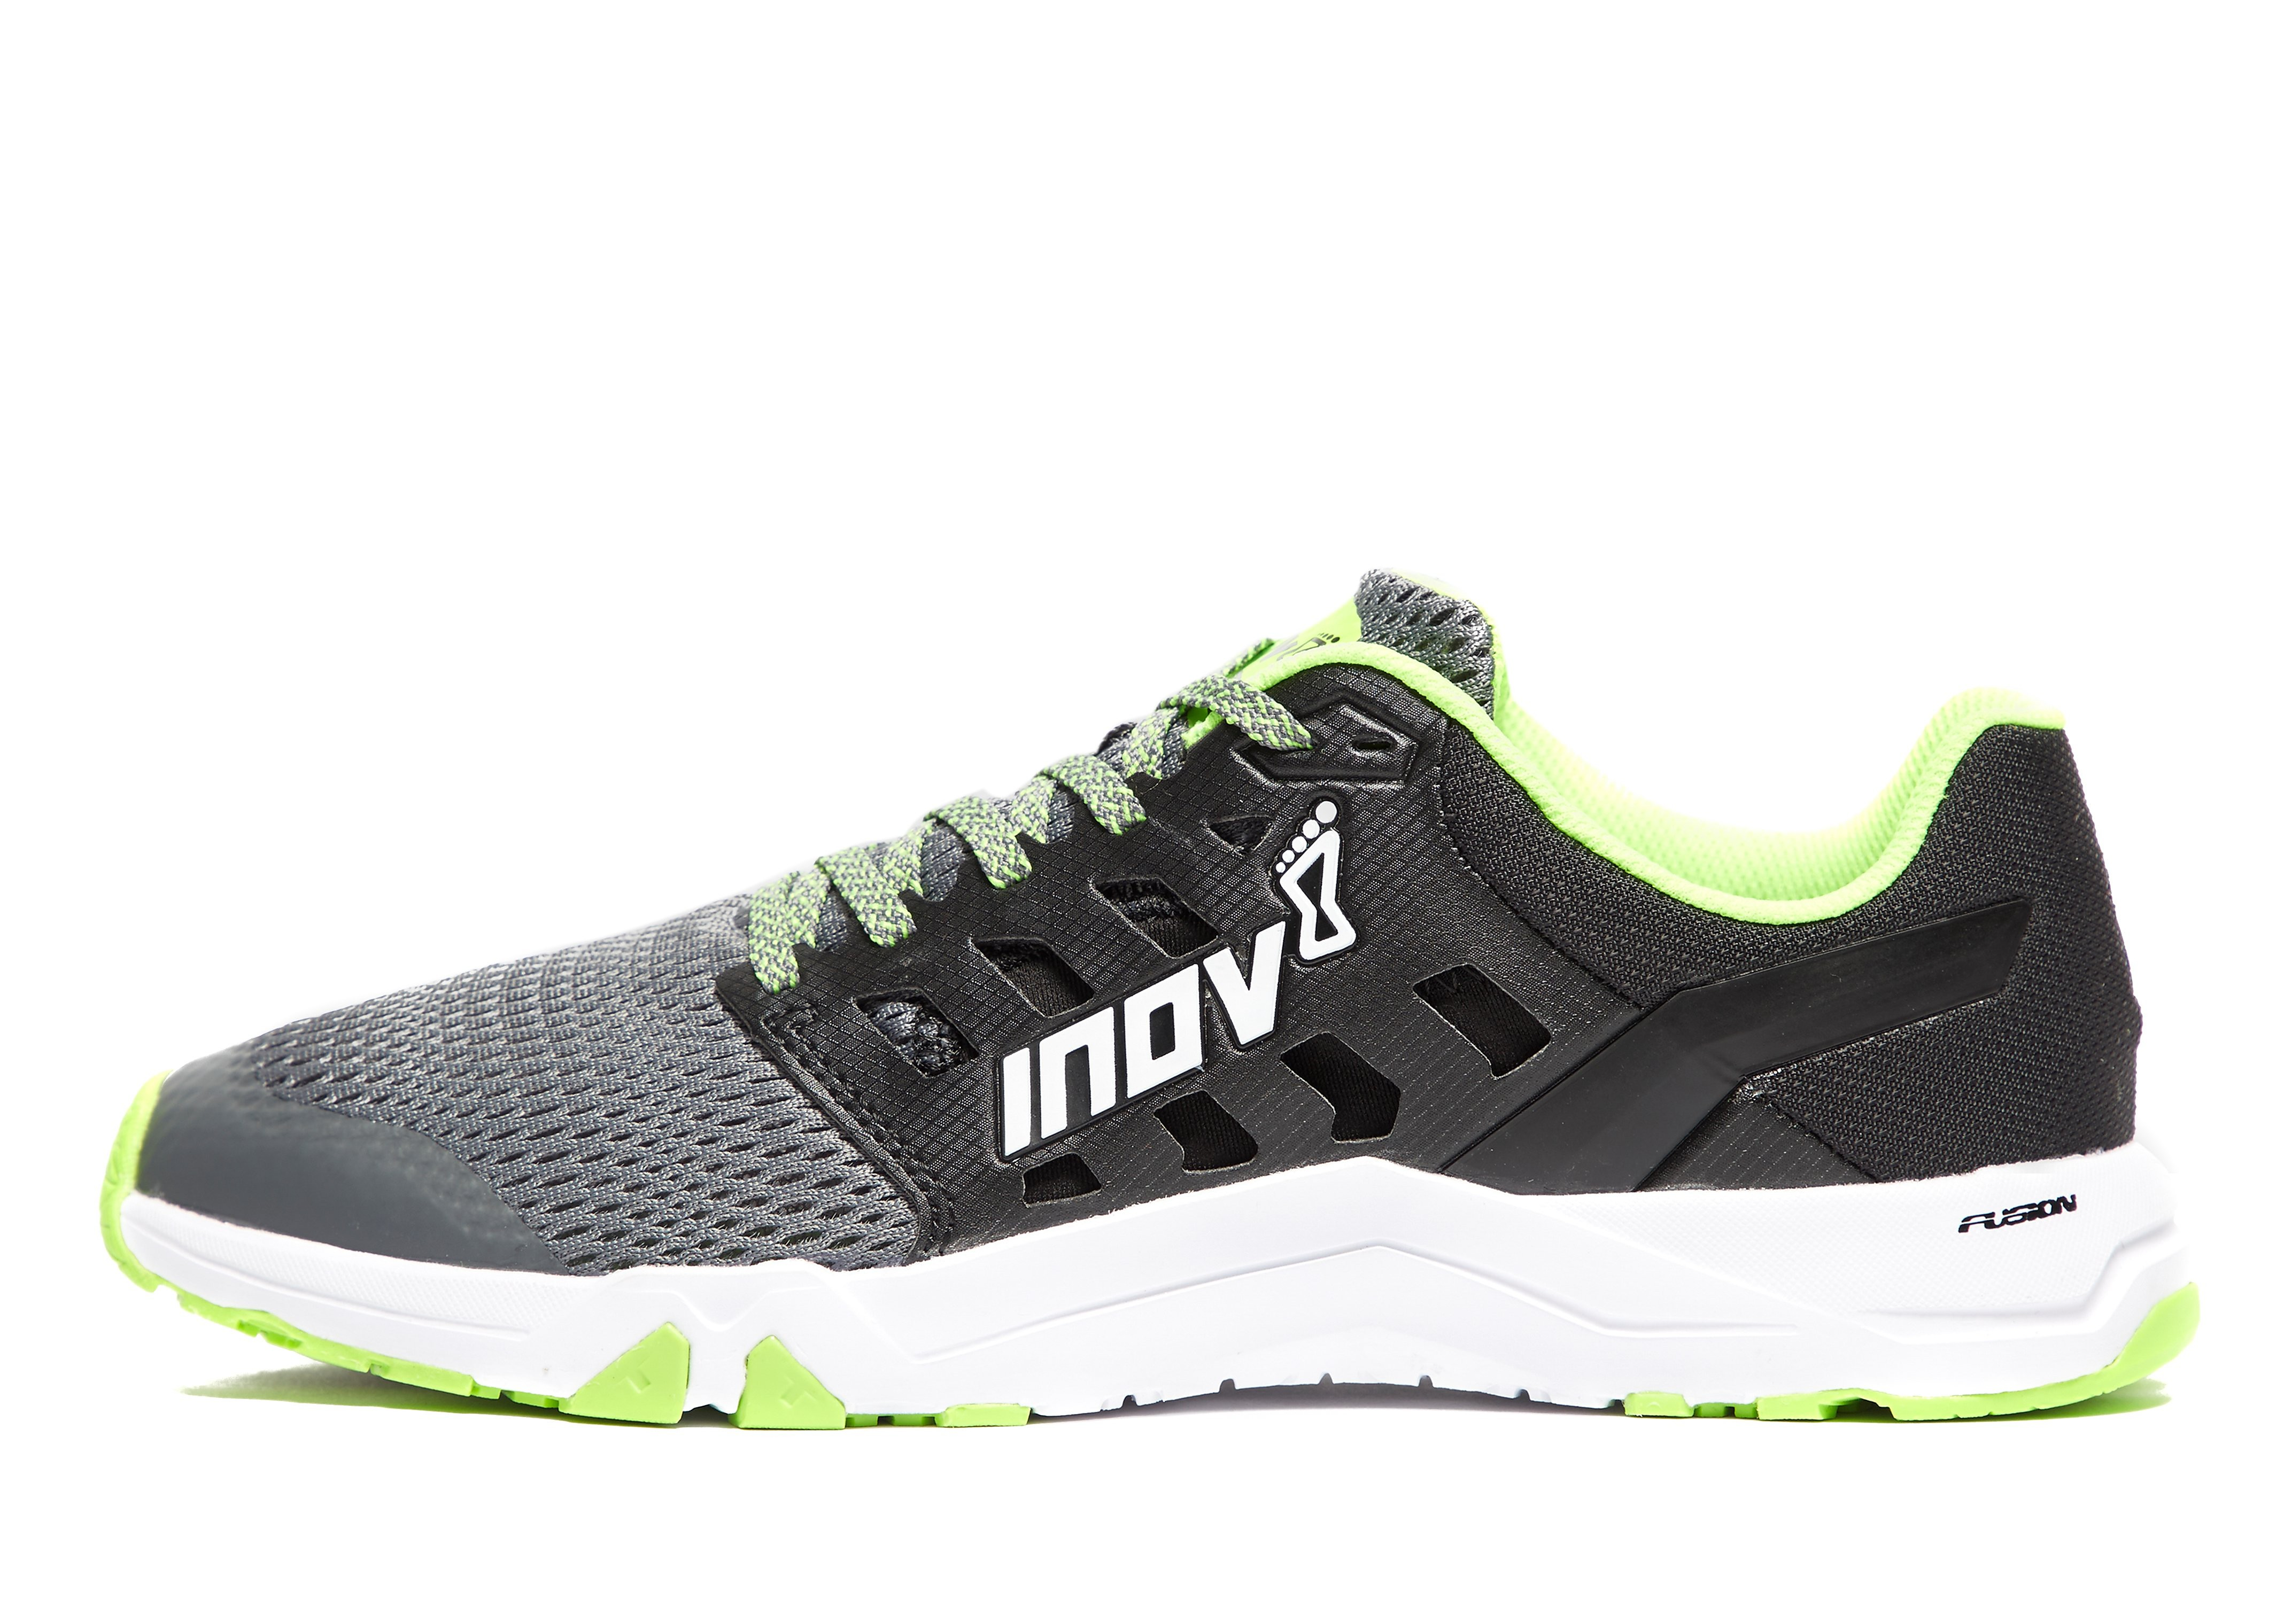 Inov-8 All Train 215 Training Shoes